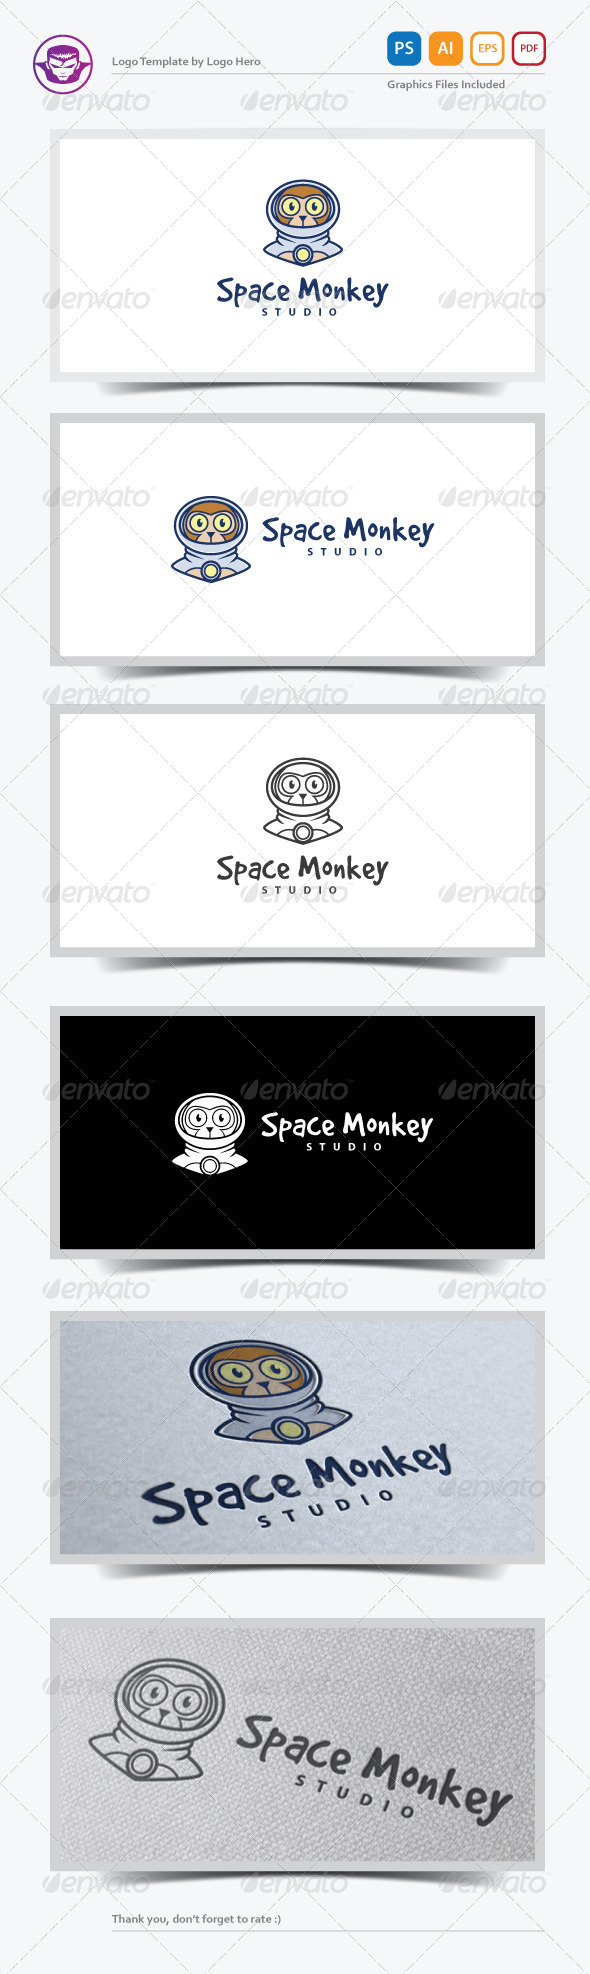 GraphicRiver Space Monkey Logo Template 7195803